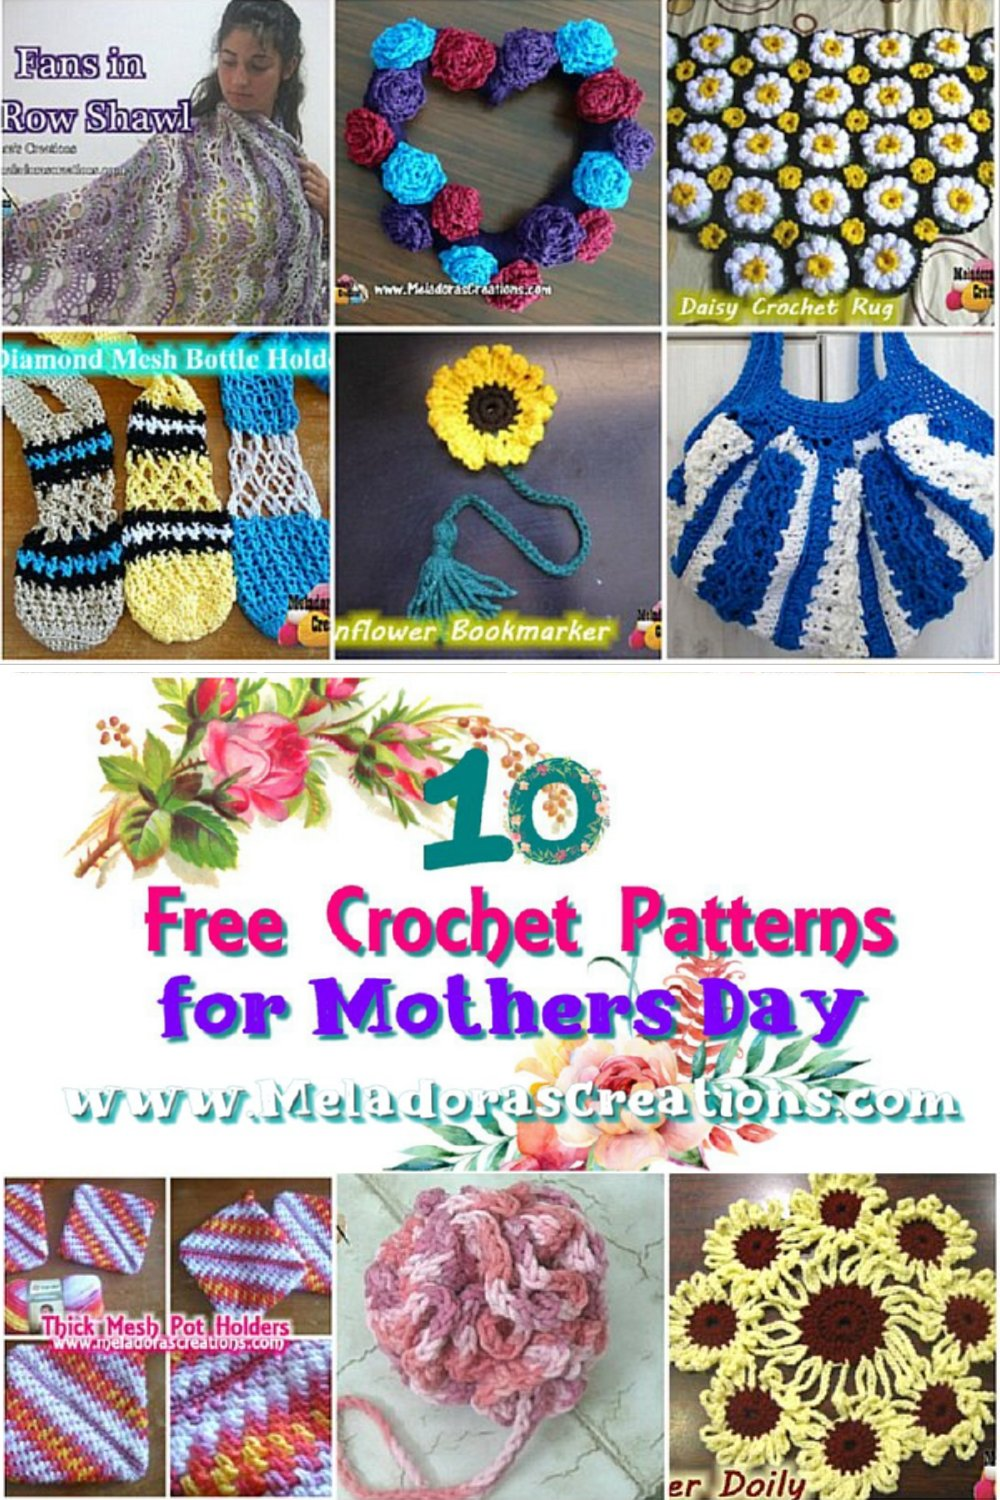 10 Free Crochet Patterns for Mothers Day - Pattern round up - crochet link blast